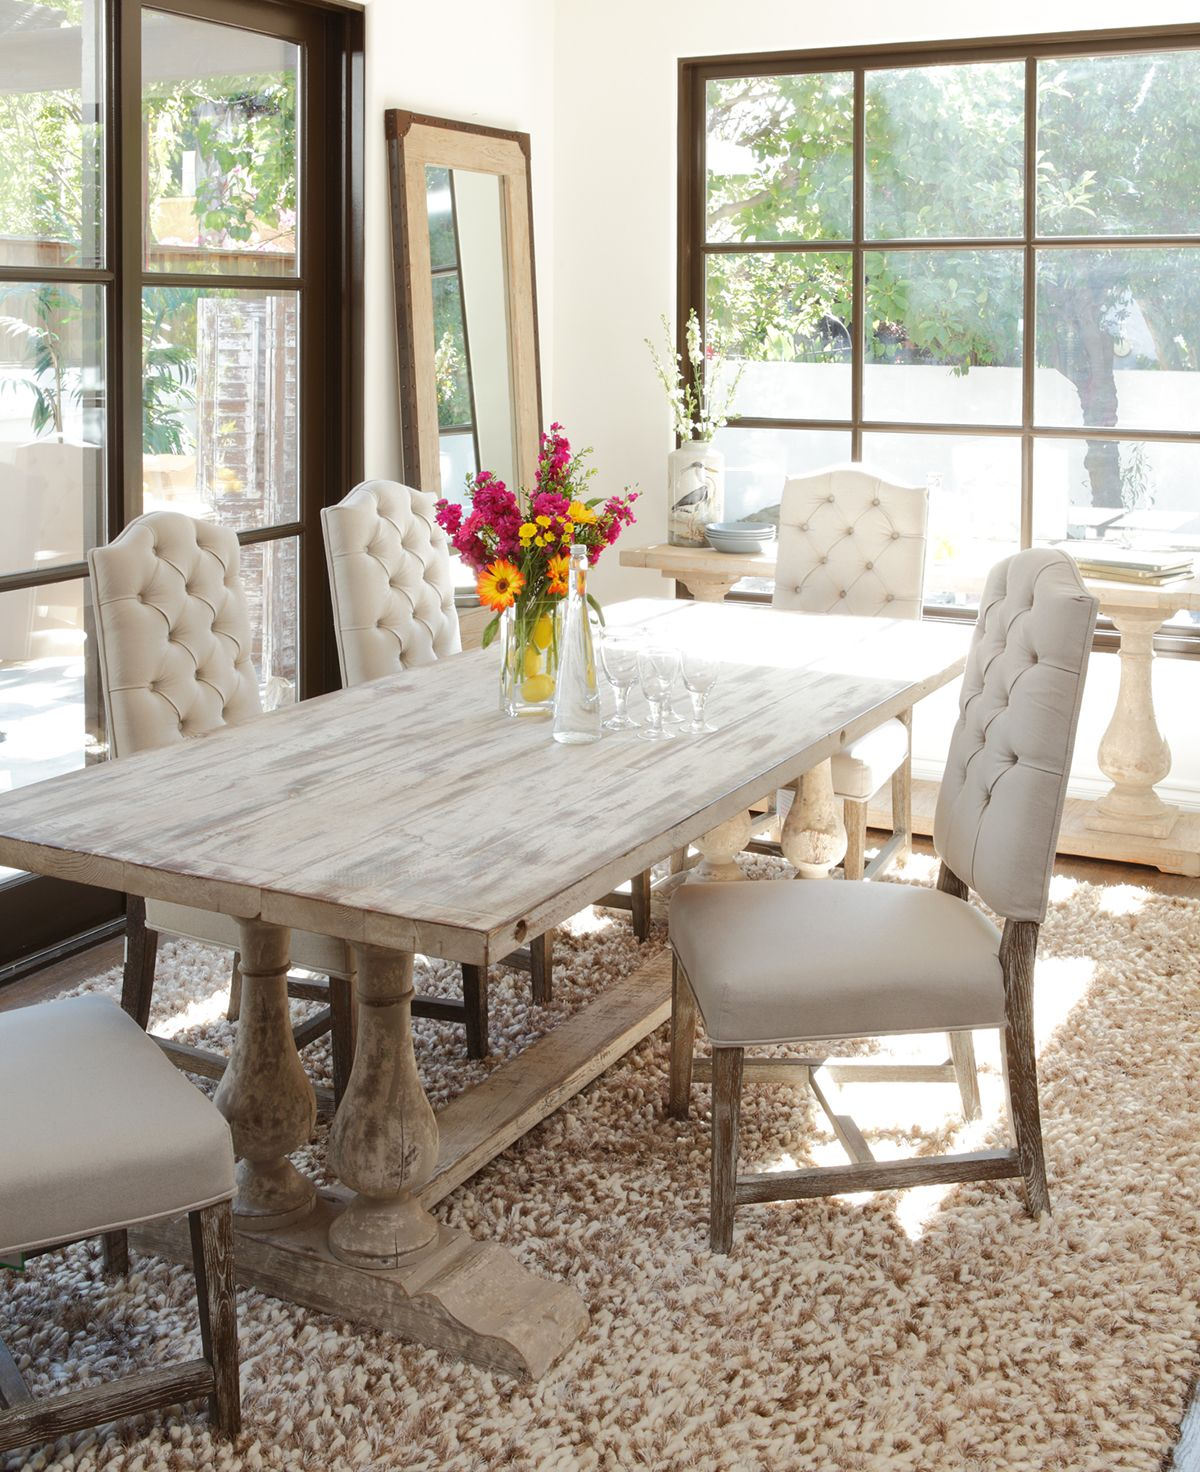 Windsor Dining Table Crafted Of Reclaimed Distressed Pine In An